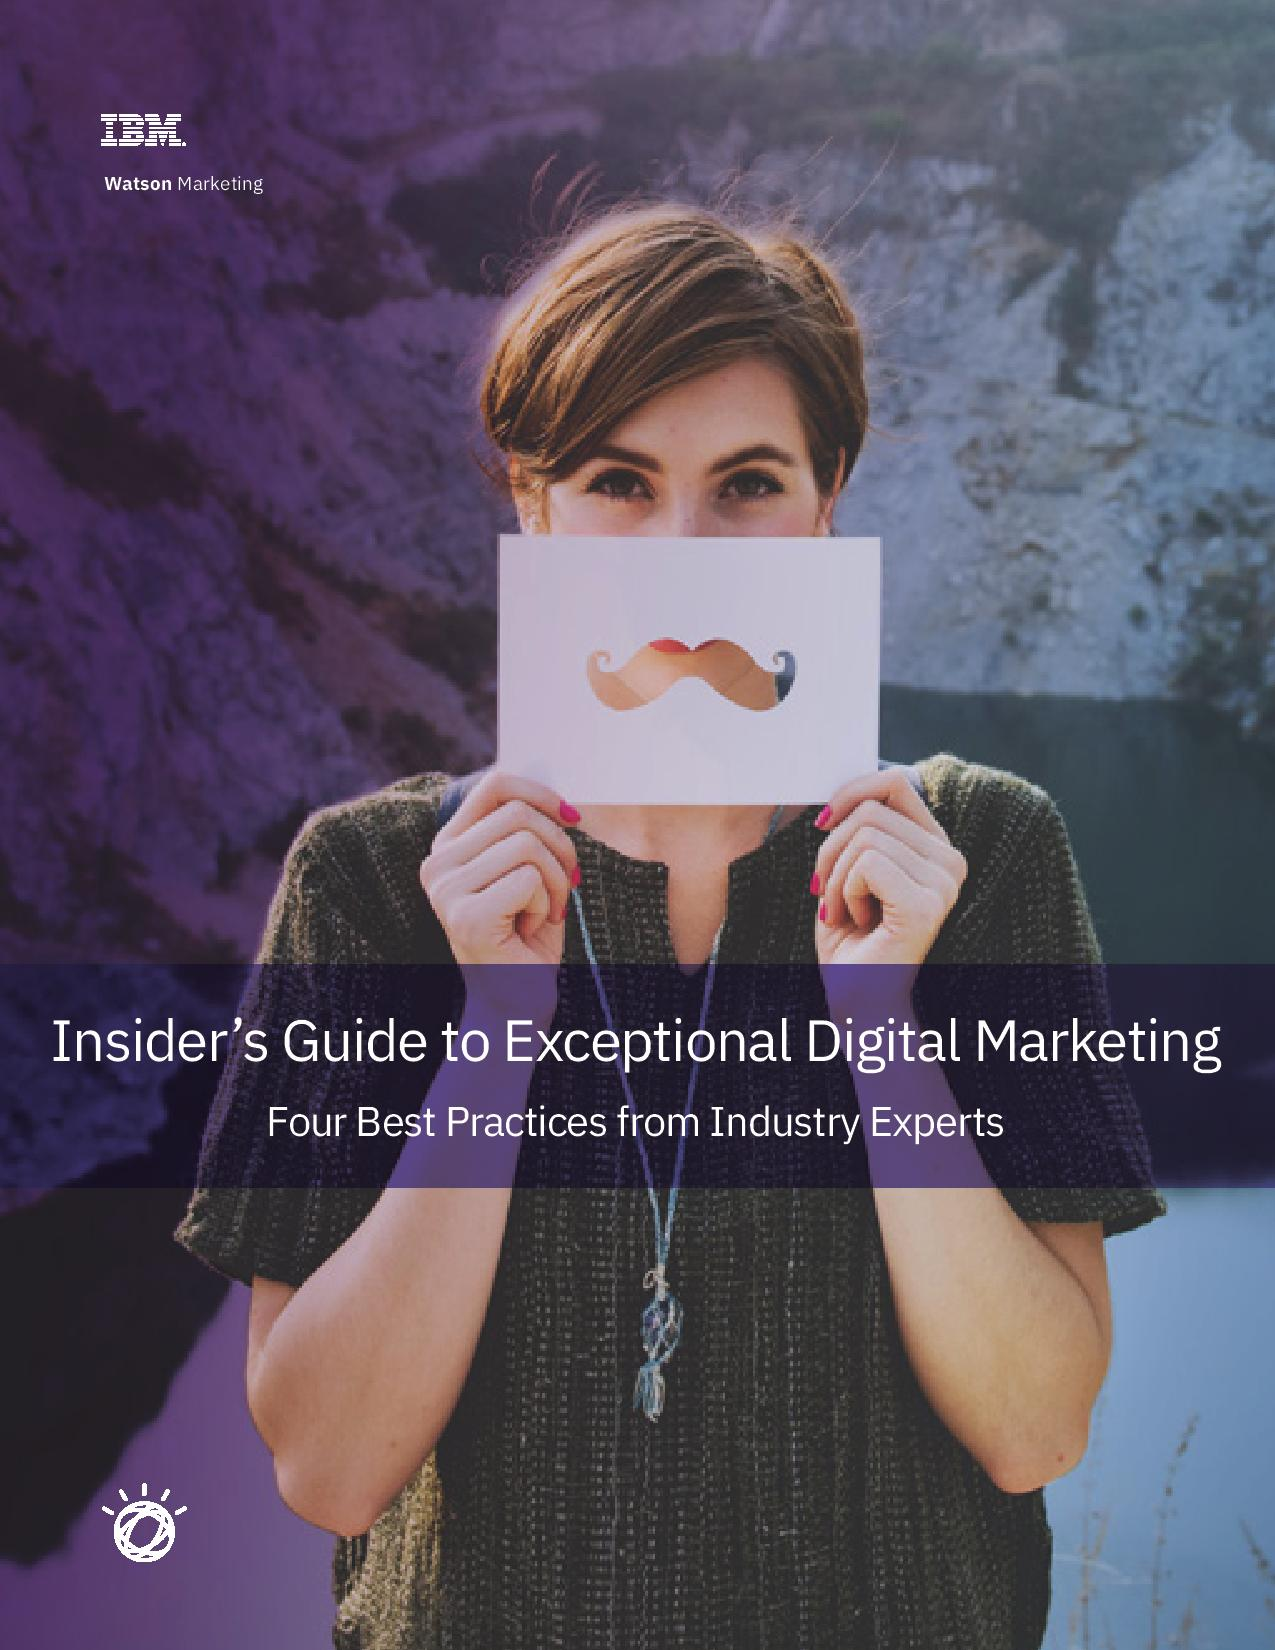 INSIDER'S GUIDE TO EXCEPTIONAL DIGITAL MARKETING